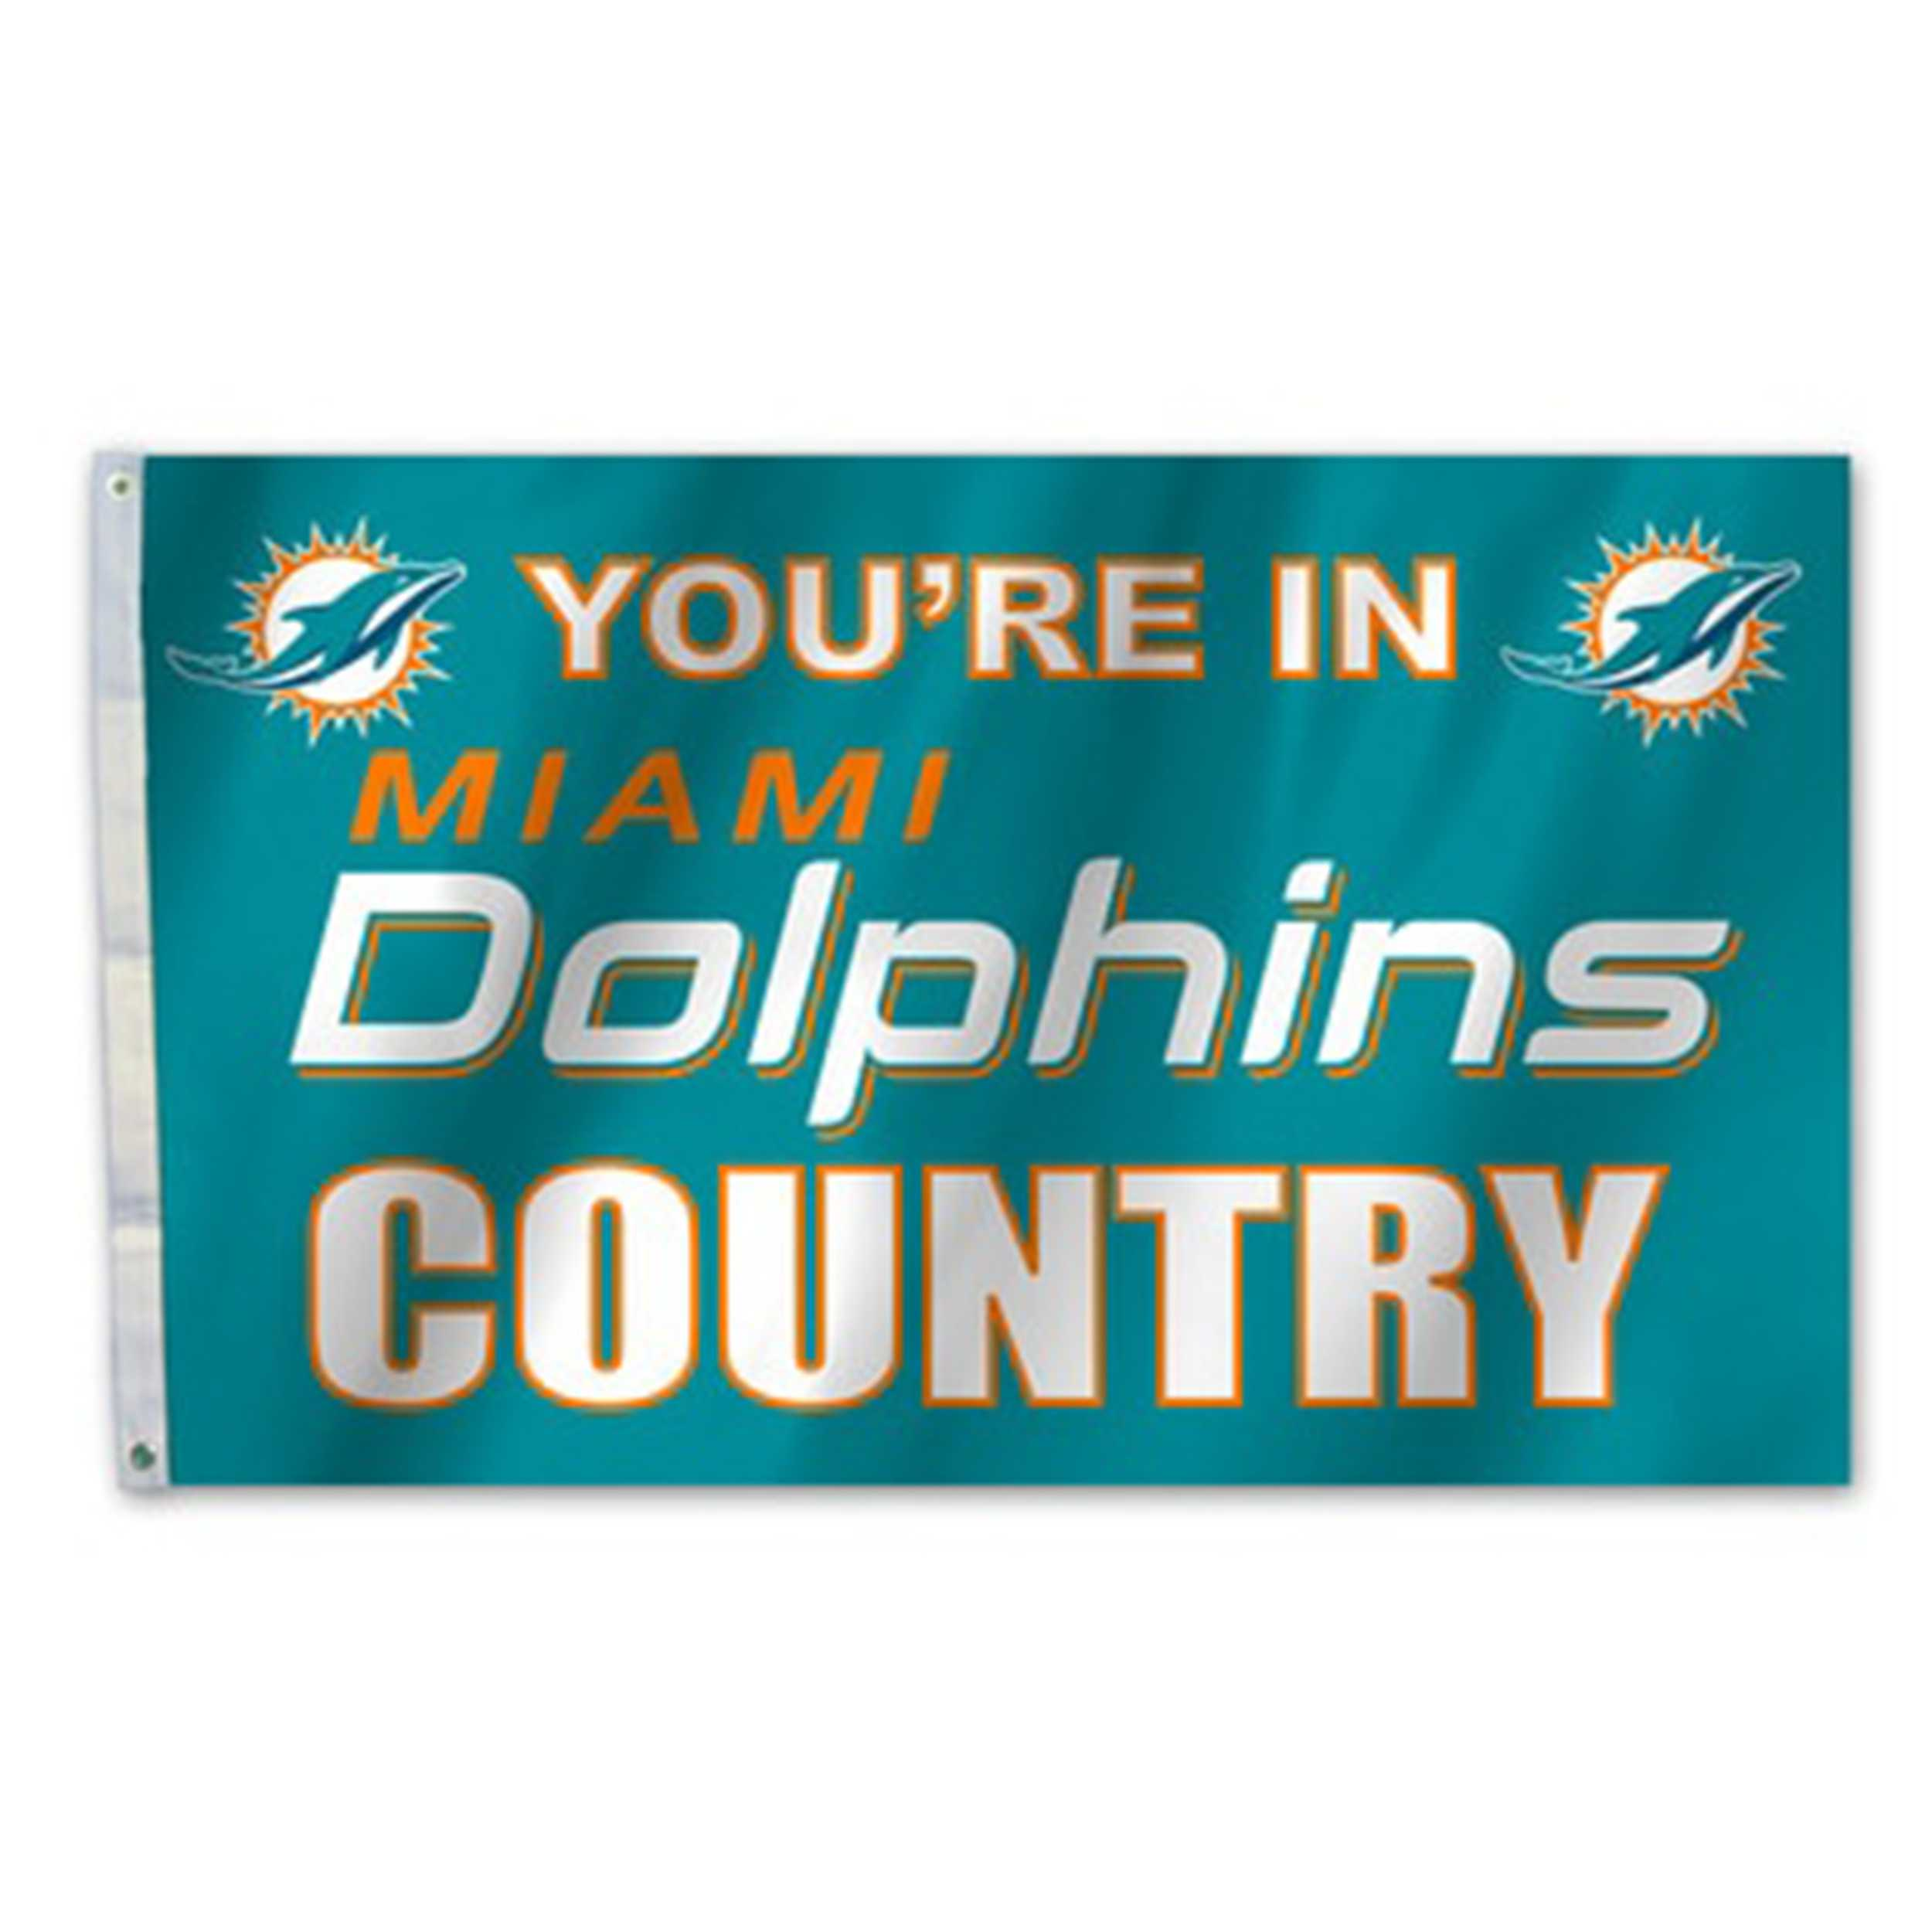 Country Flag-Miami Dolphins